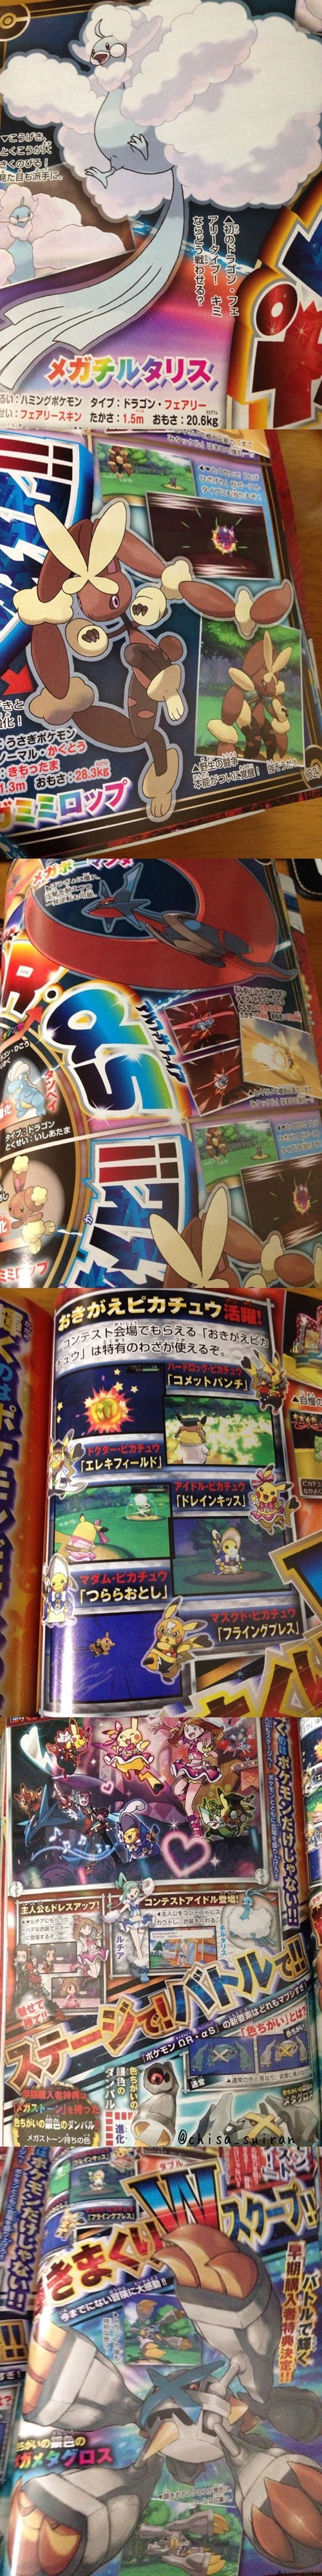 Pokémon scans news mega evolutions corocoro Video Game Coverage - 8281631232